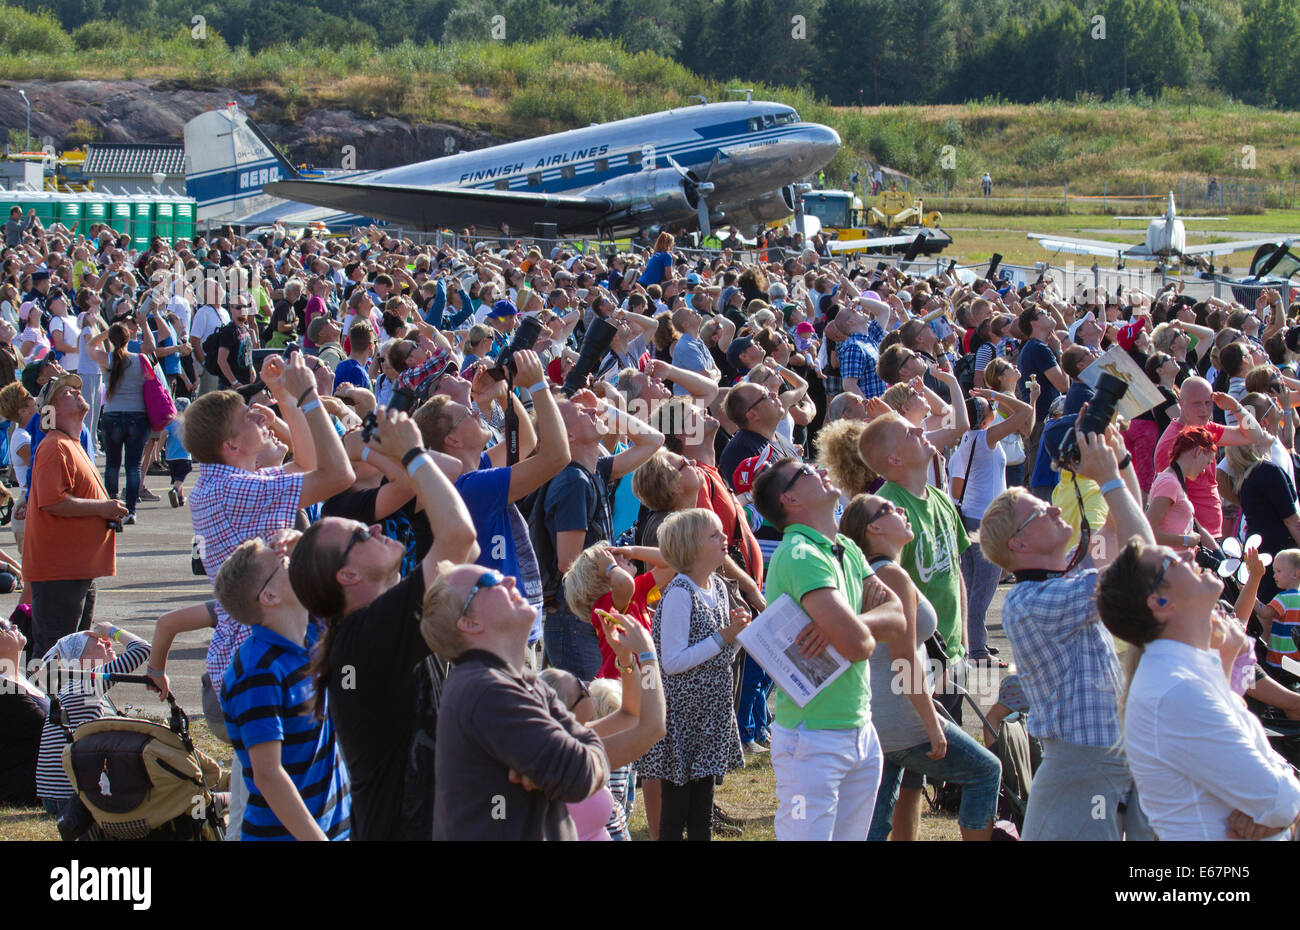 Helsinki, Finland, 17th of August, 2014. People watched Finland International Airshow 2014 at Helsinki-Malmi Airport. - Stock Image